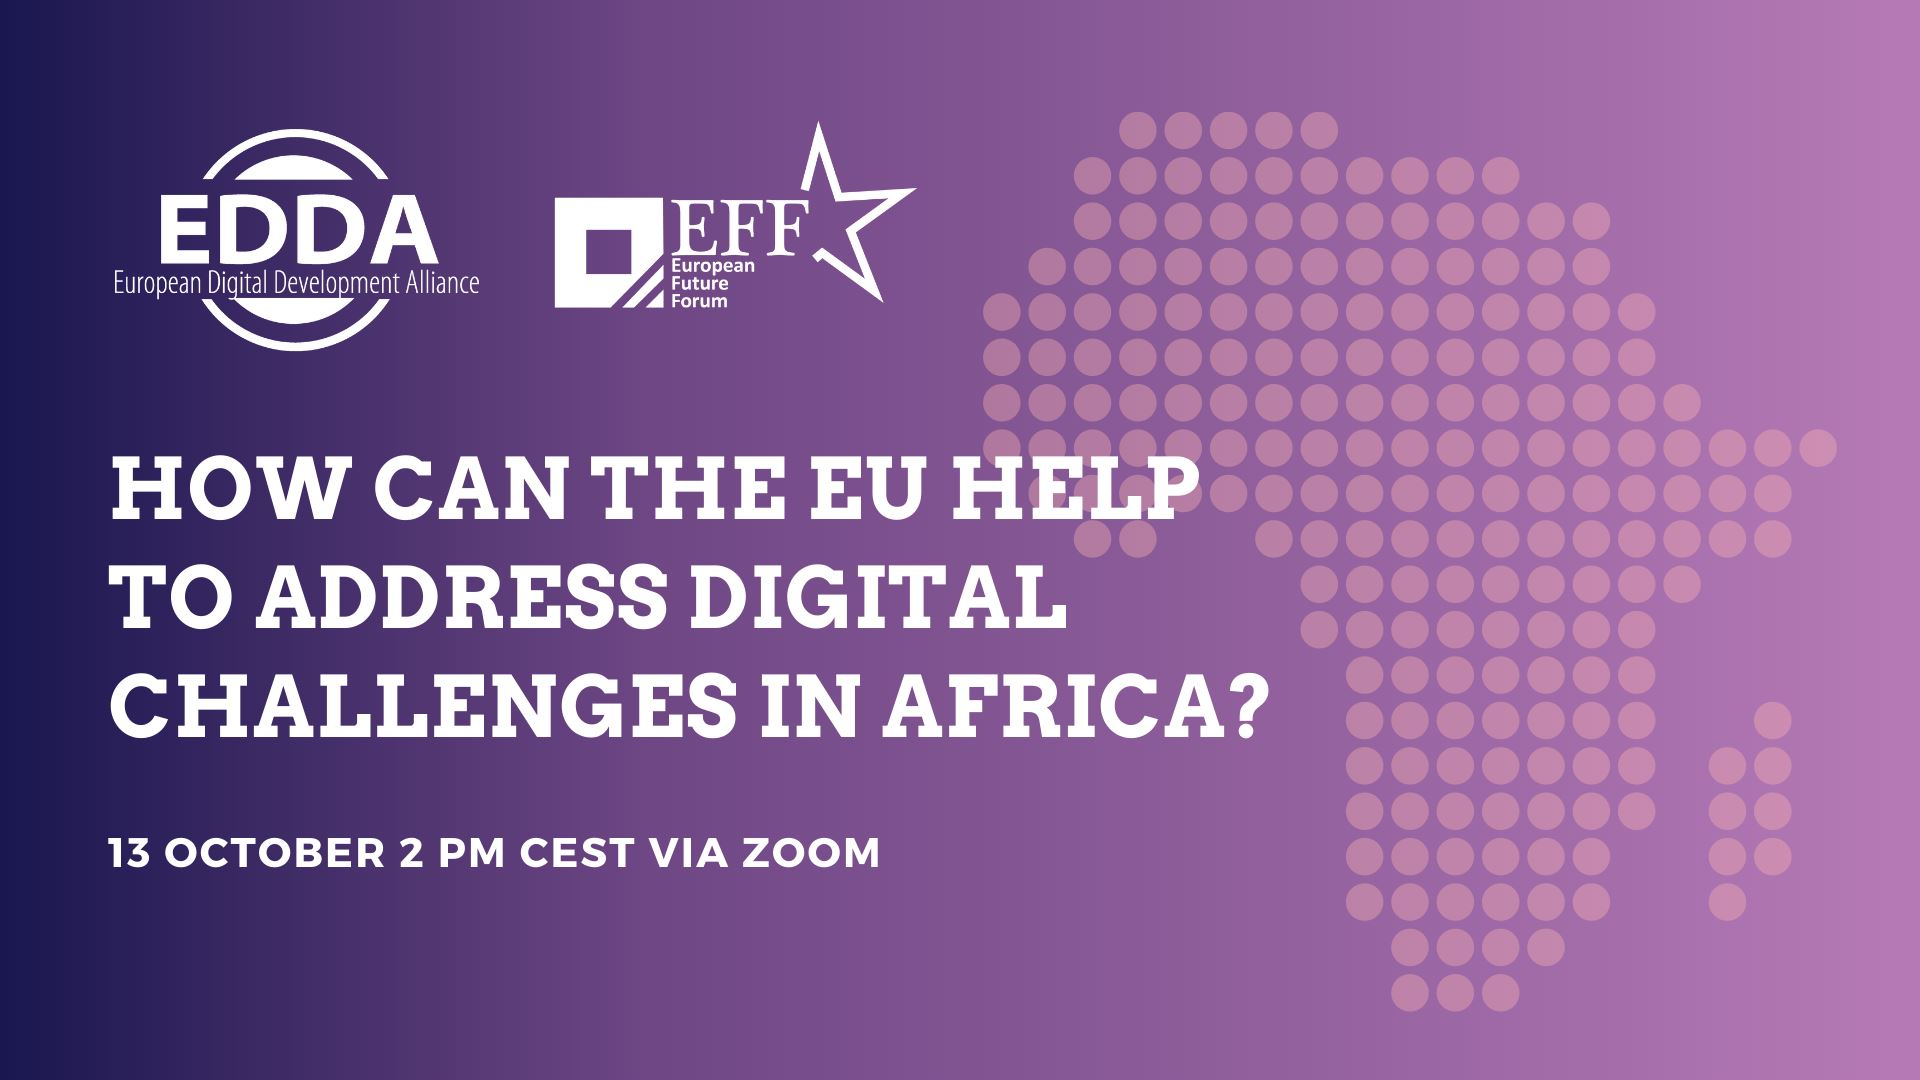 How can the EU help to address digital challenges in Africa? (13.10.20 2 pm CET)